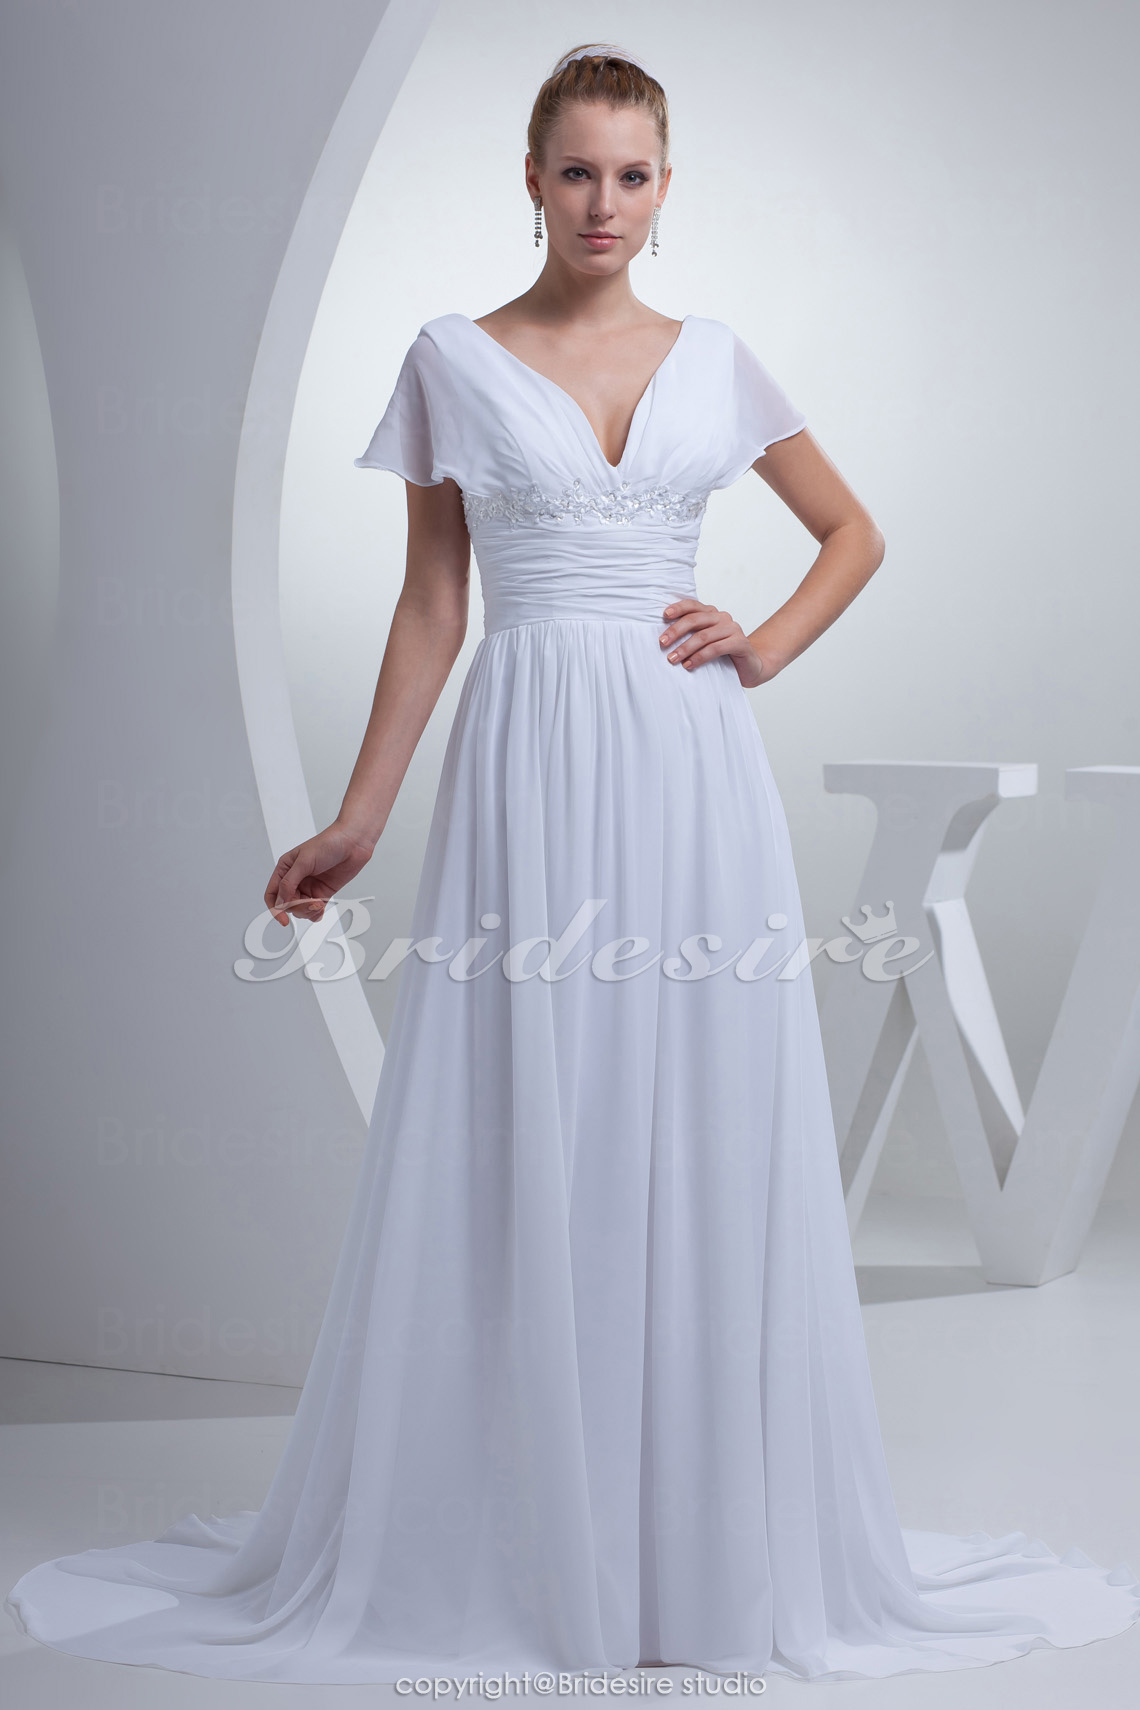 A-line V-neck Court Train Short Sleeve Chiffon Wedding Dress